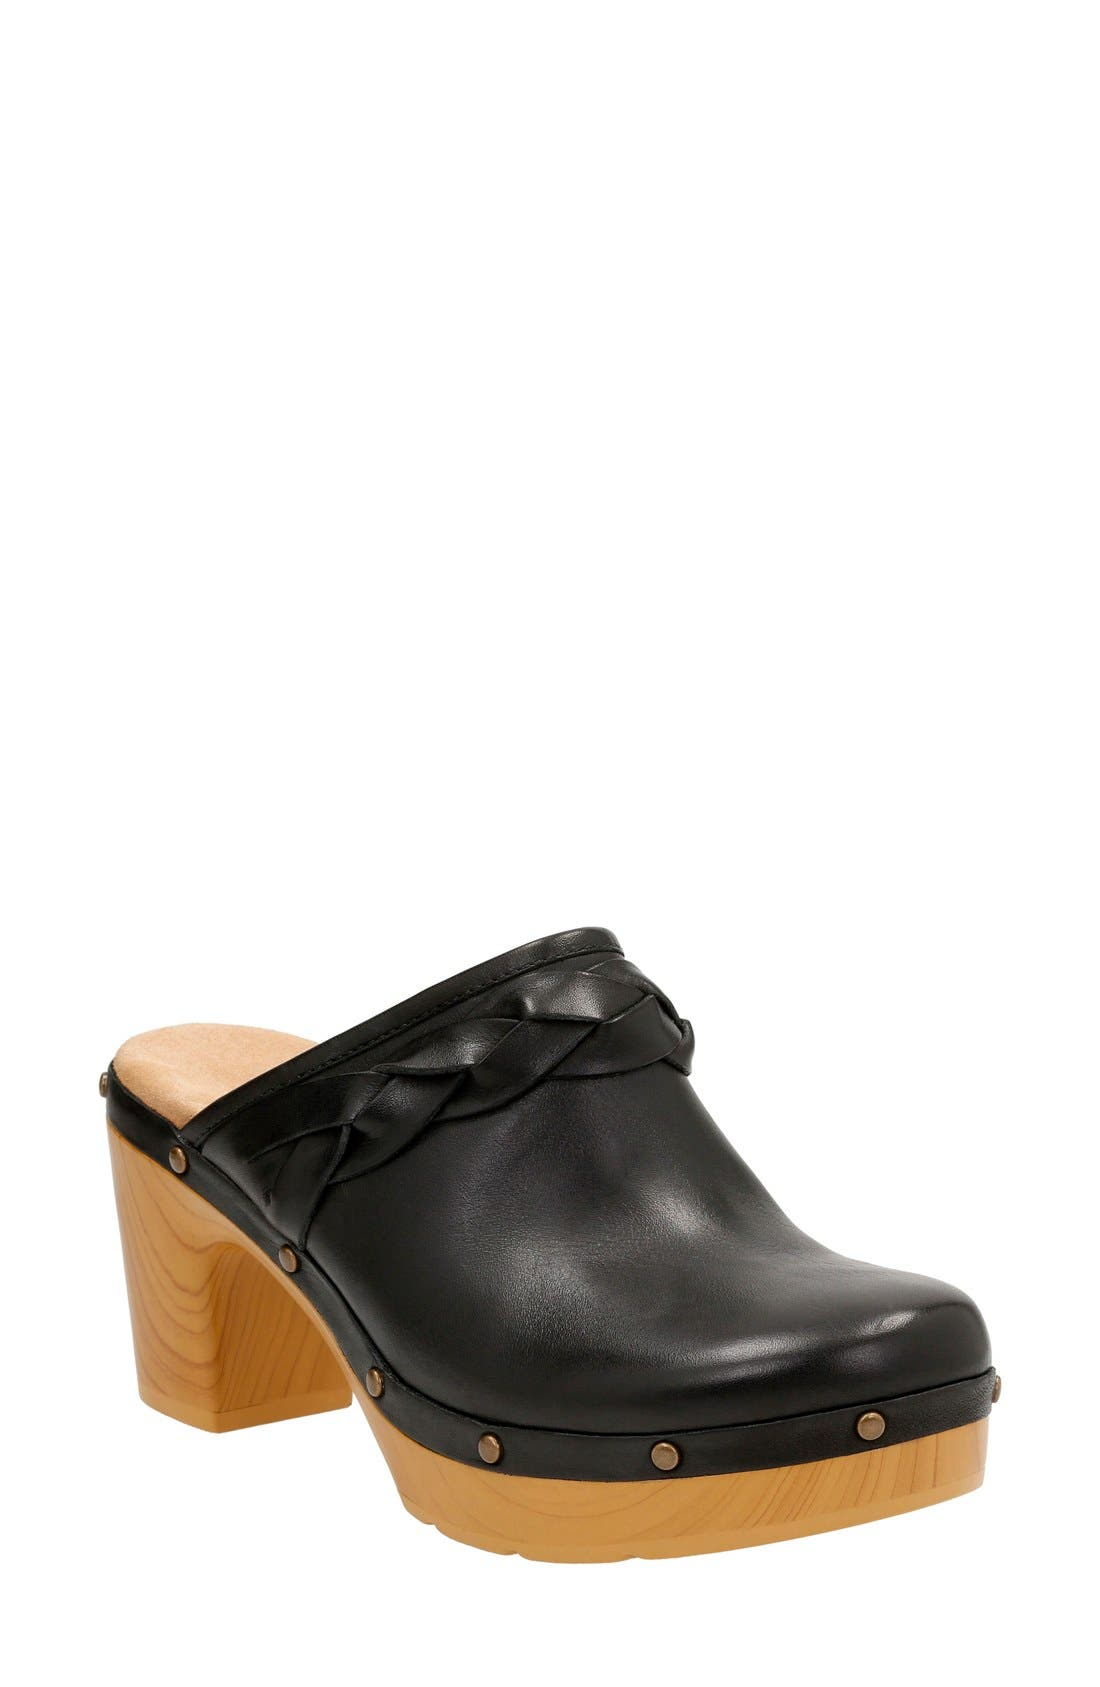 Ledella Meg Platform Clog,                         Main,                         color, Black Leather